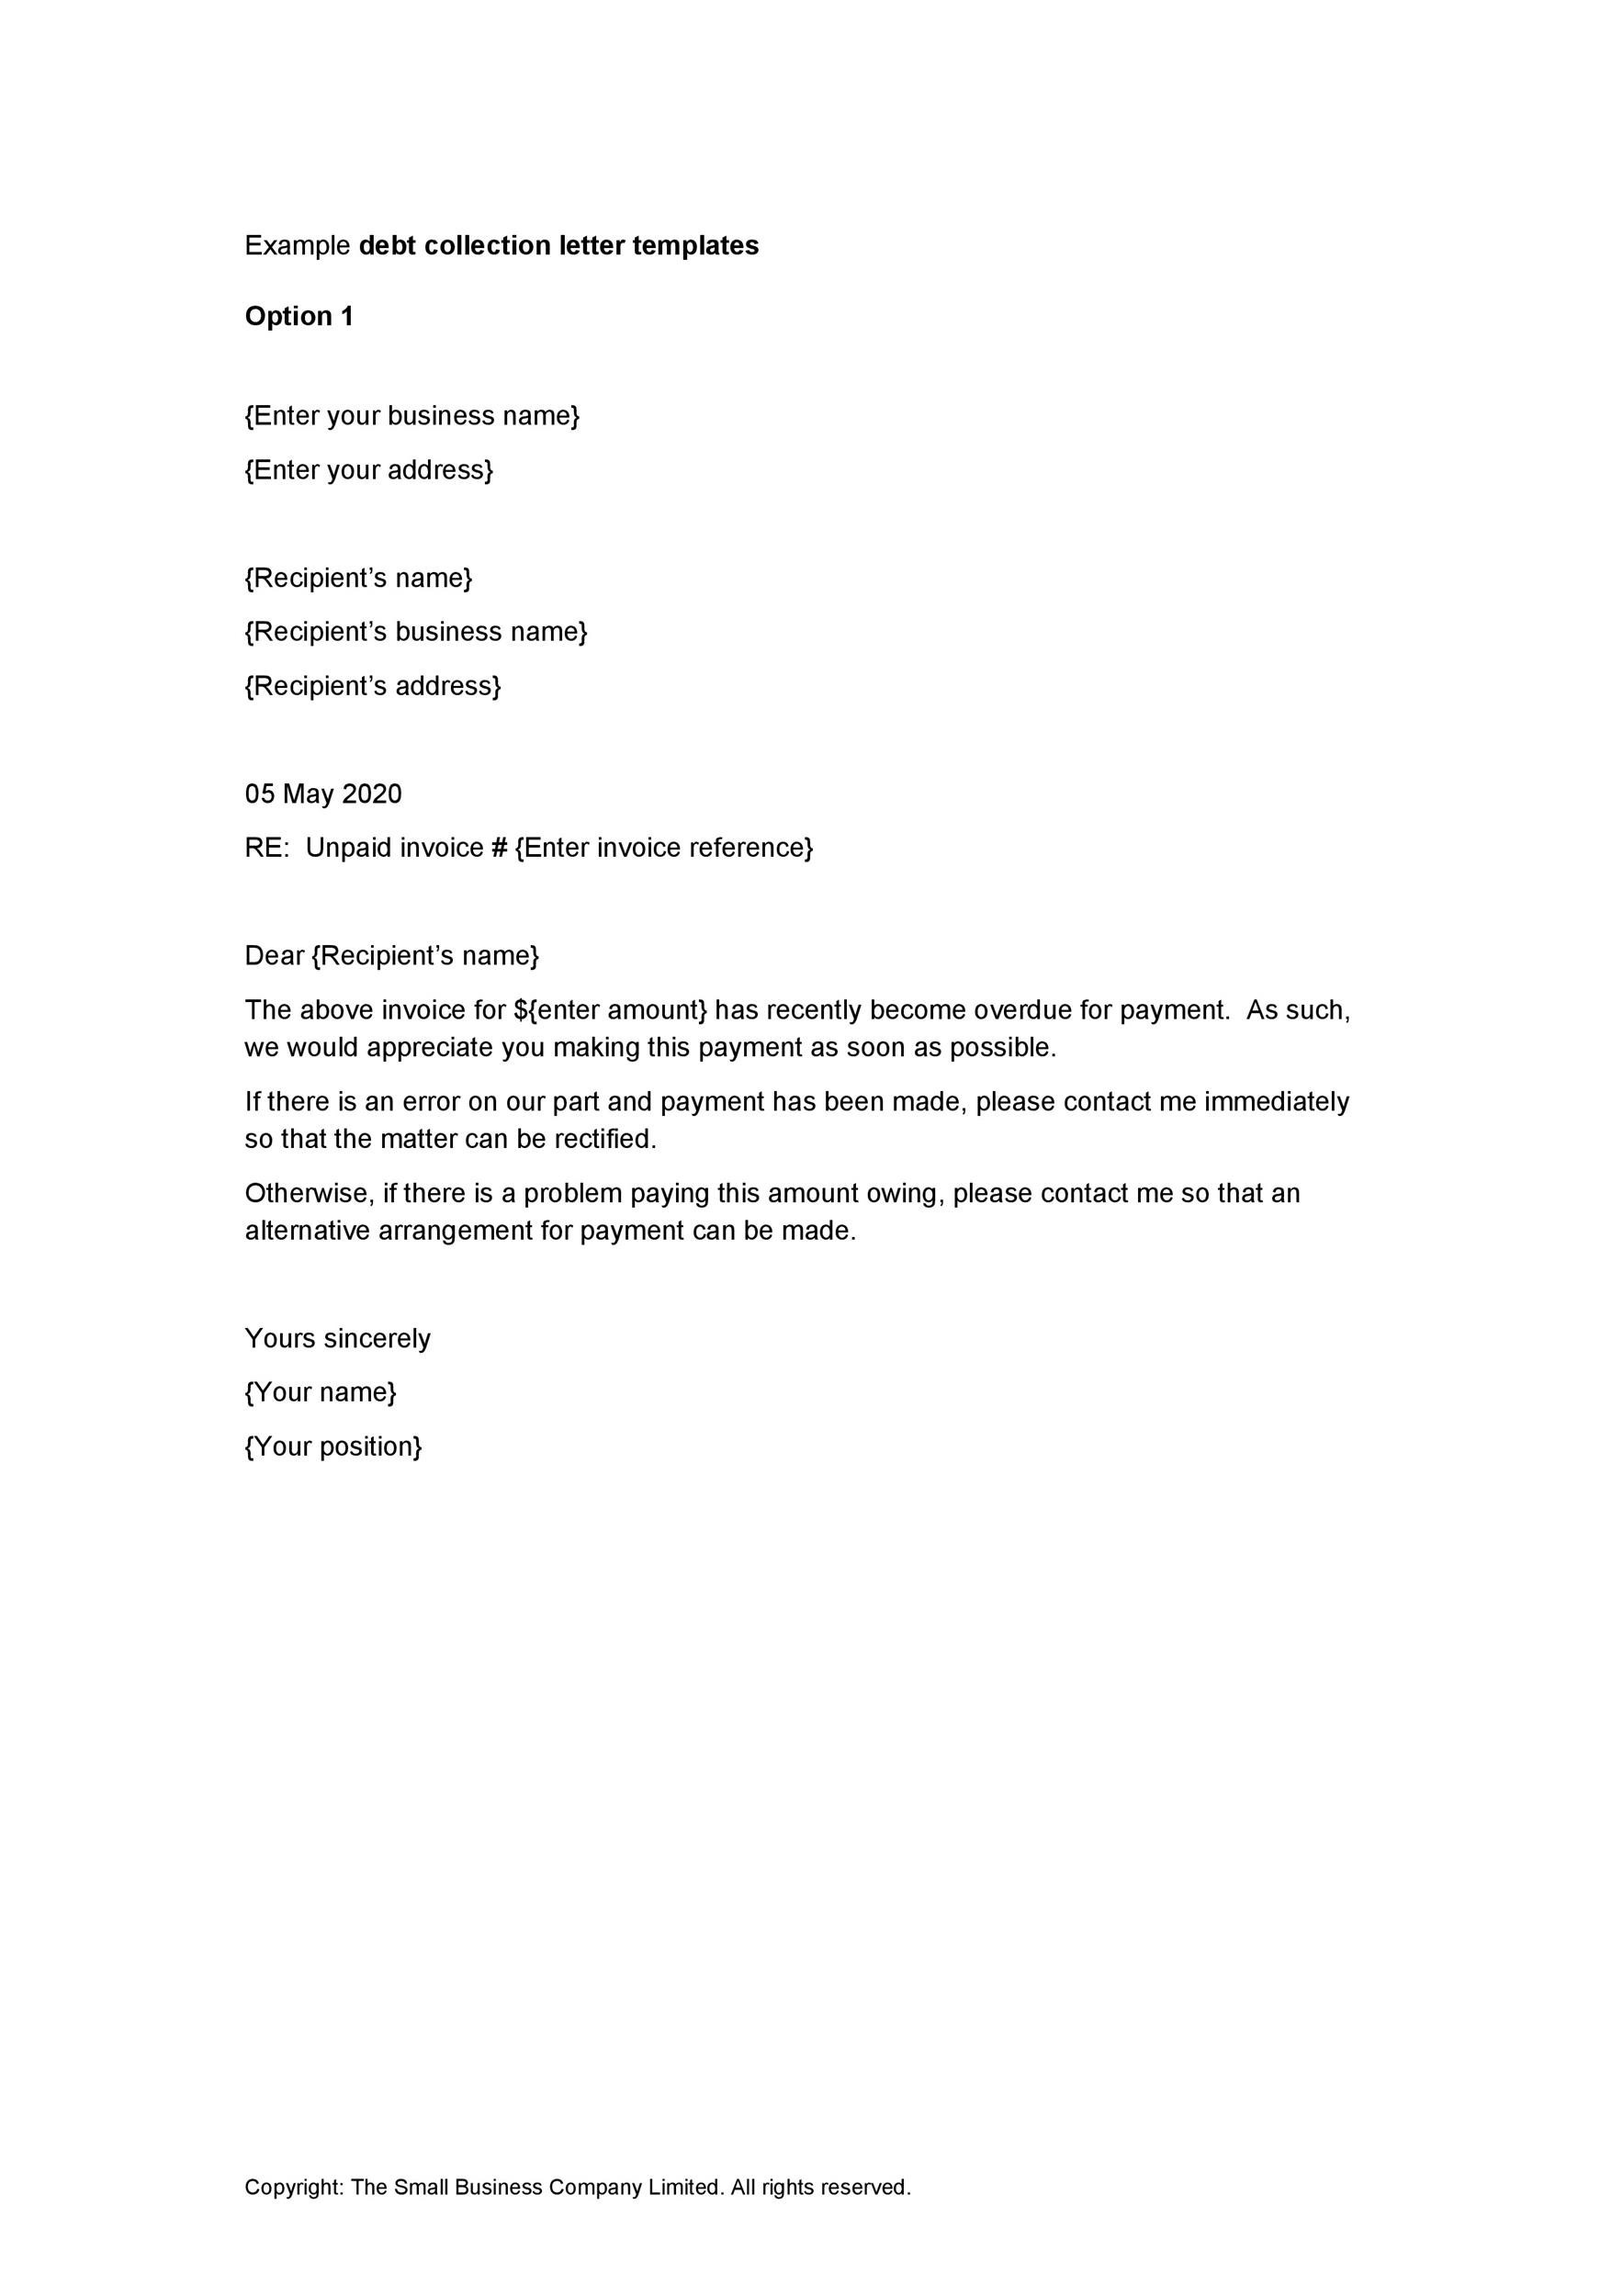 Free collection letter template 03